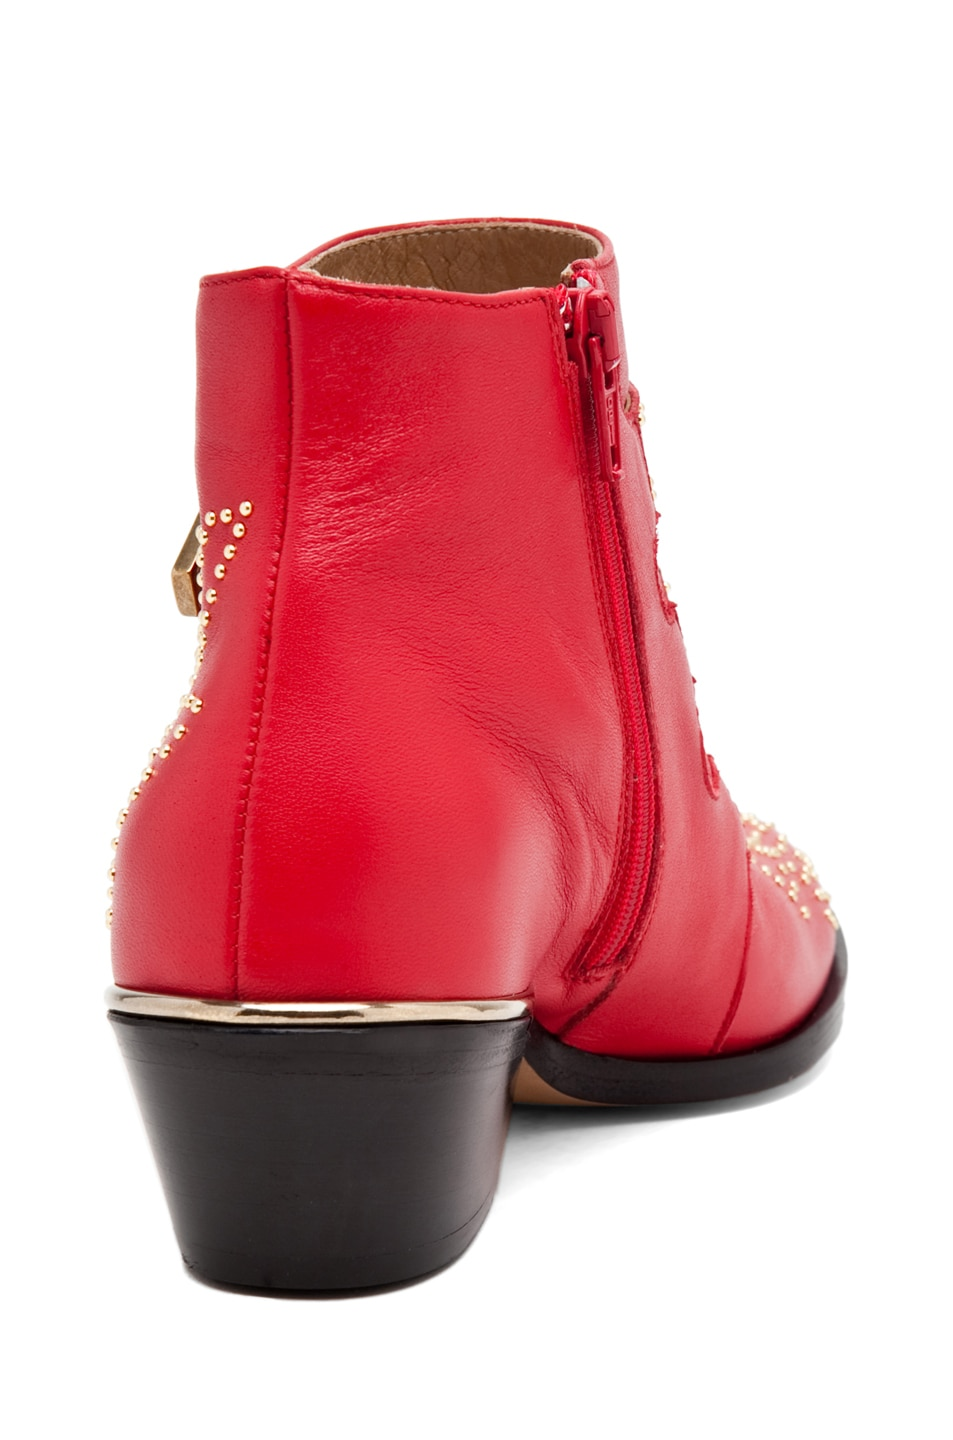 Image 3 of Chloe Susanna Leather Studded Booties in Red